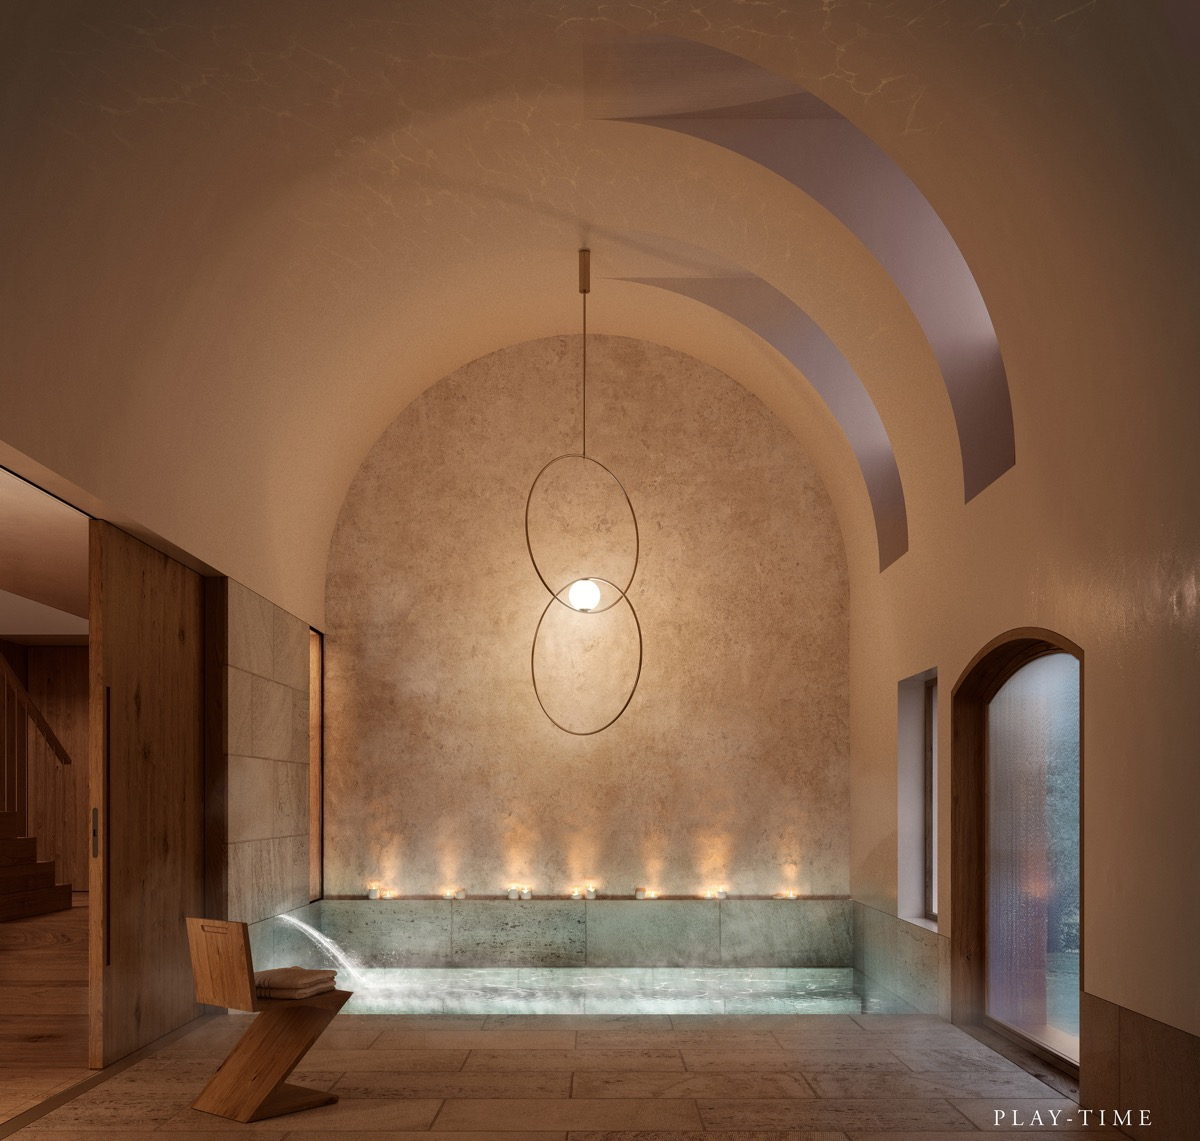 50 Luxury Bathrooms And Tips You Can Copy From Them images 42